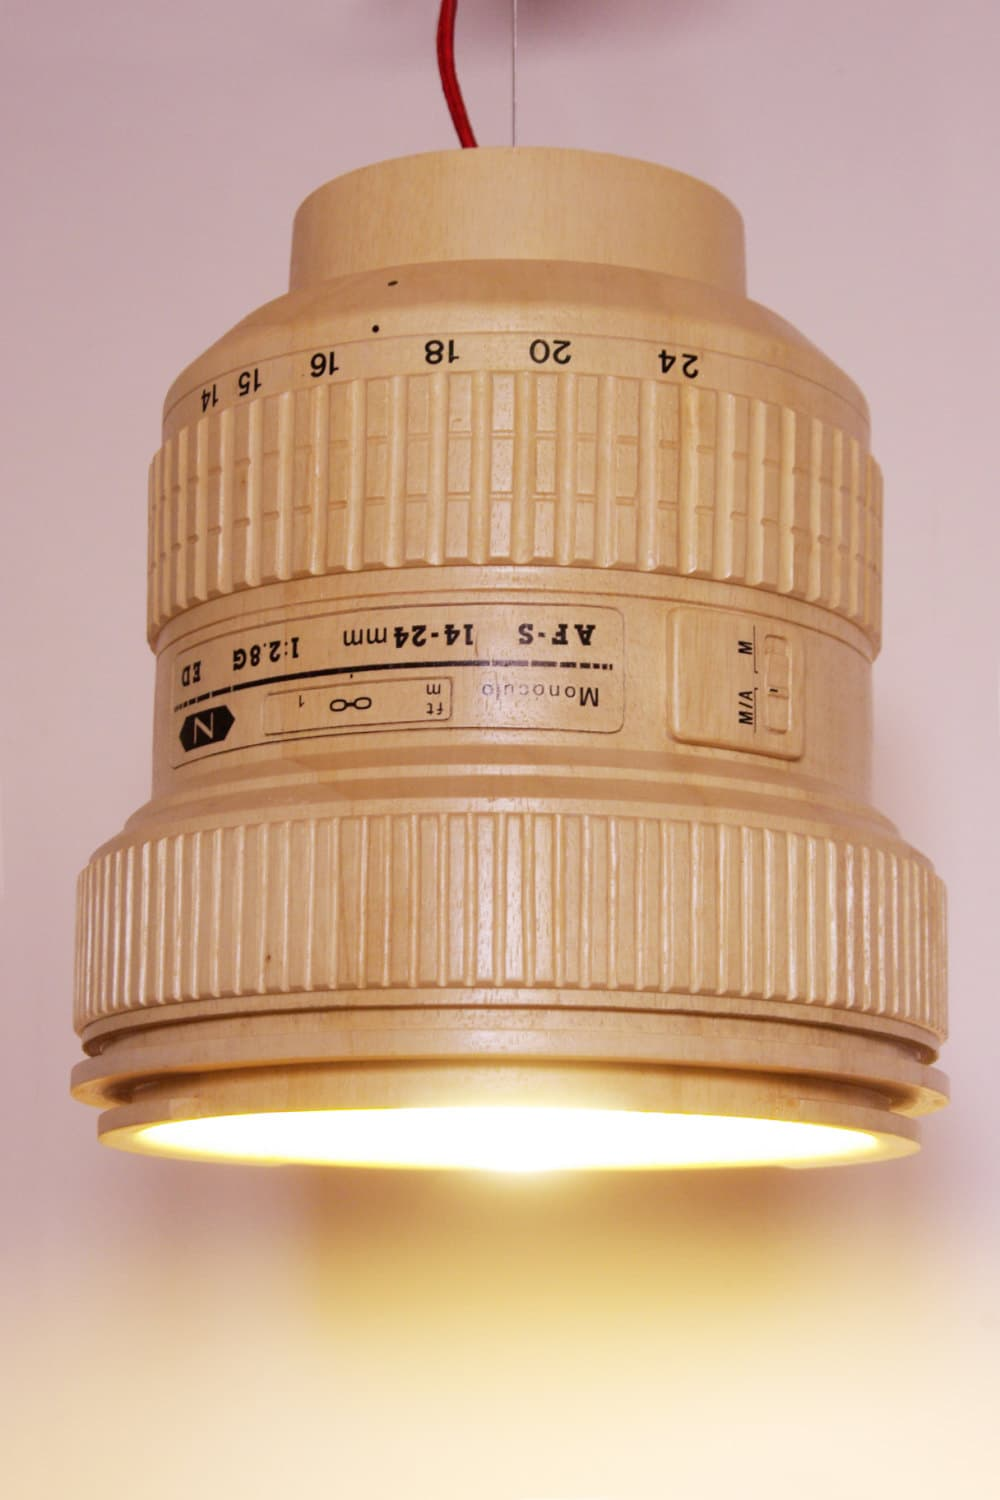 DSLR Paparazzi Wooden Hanging Lamp Looks Just Like The Camera Lens